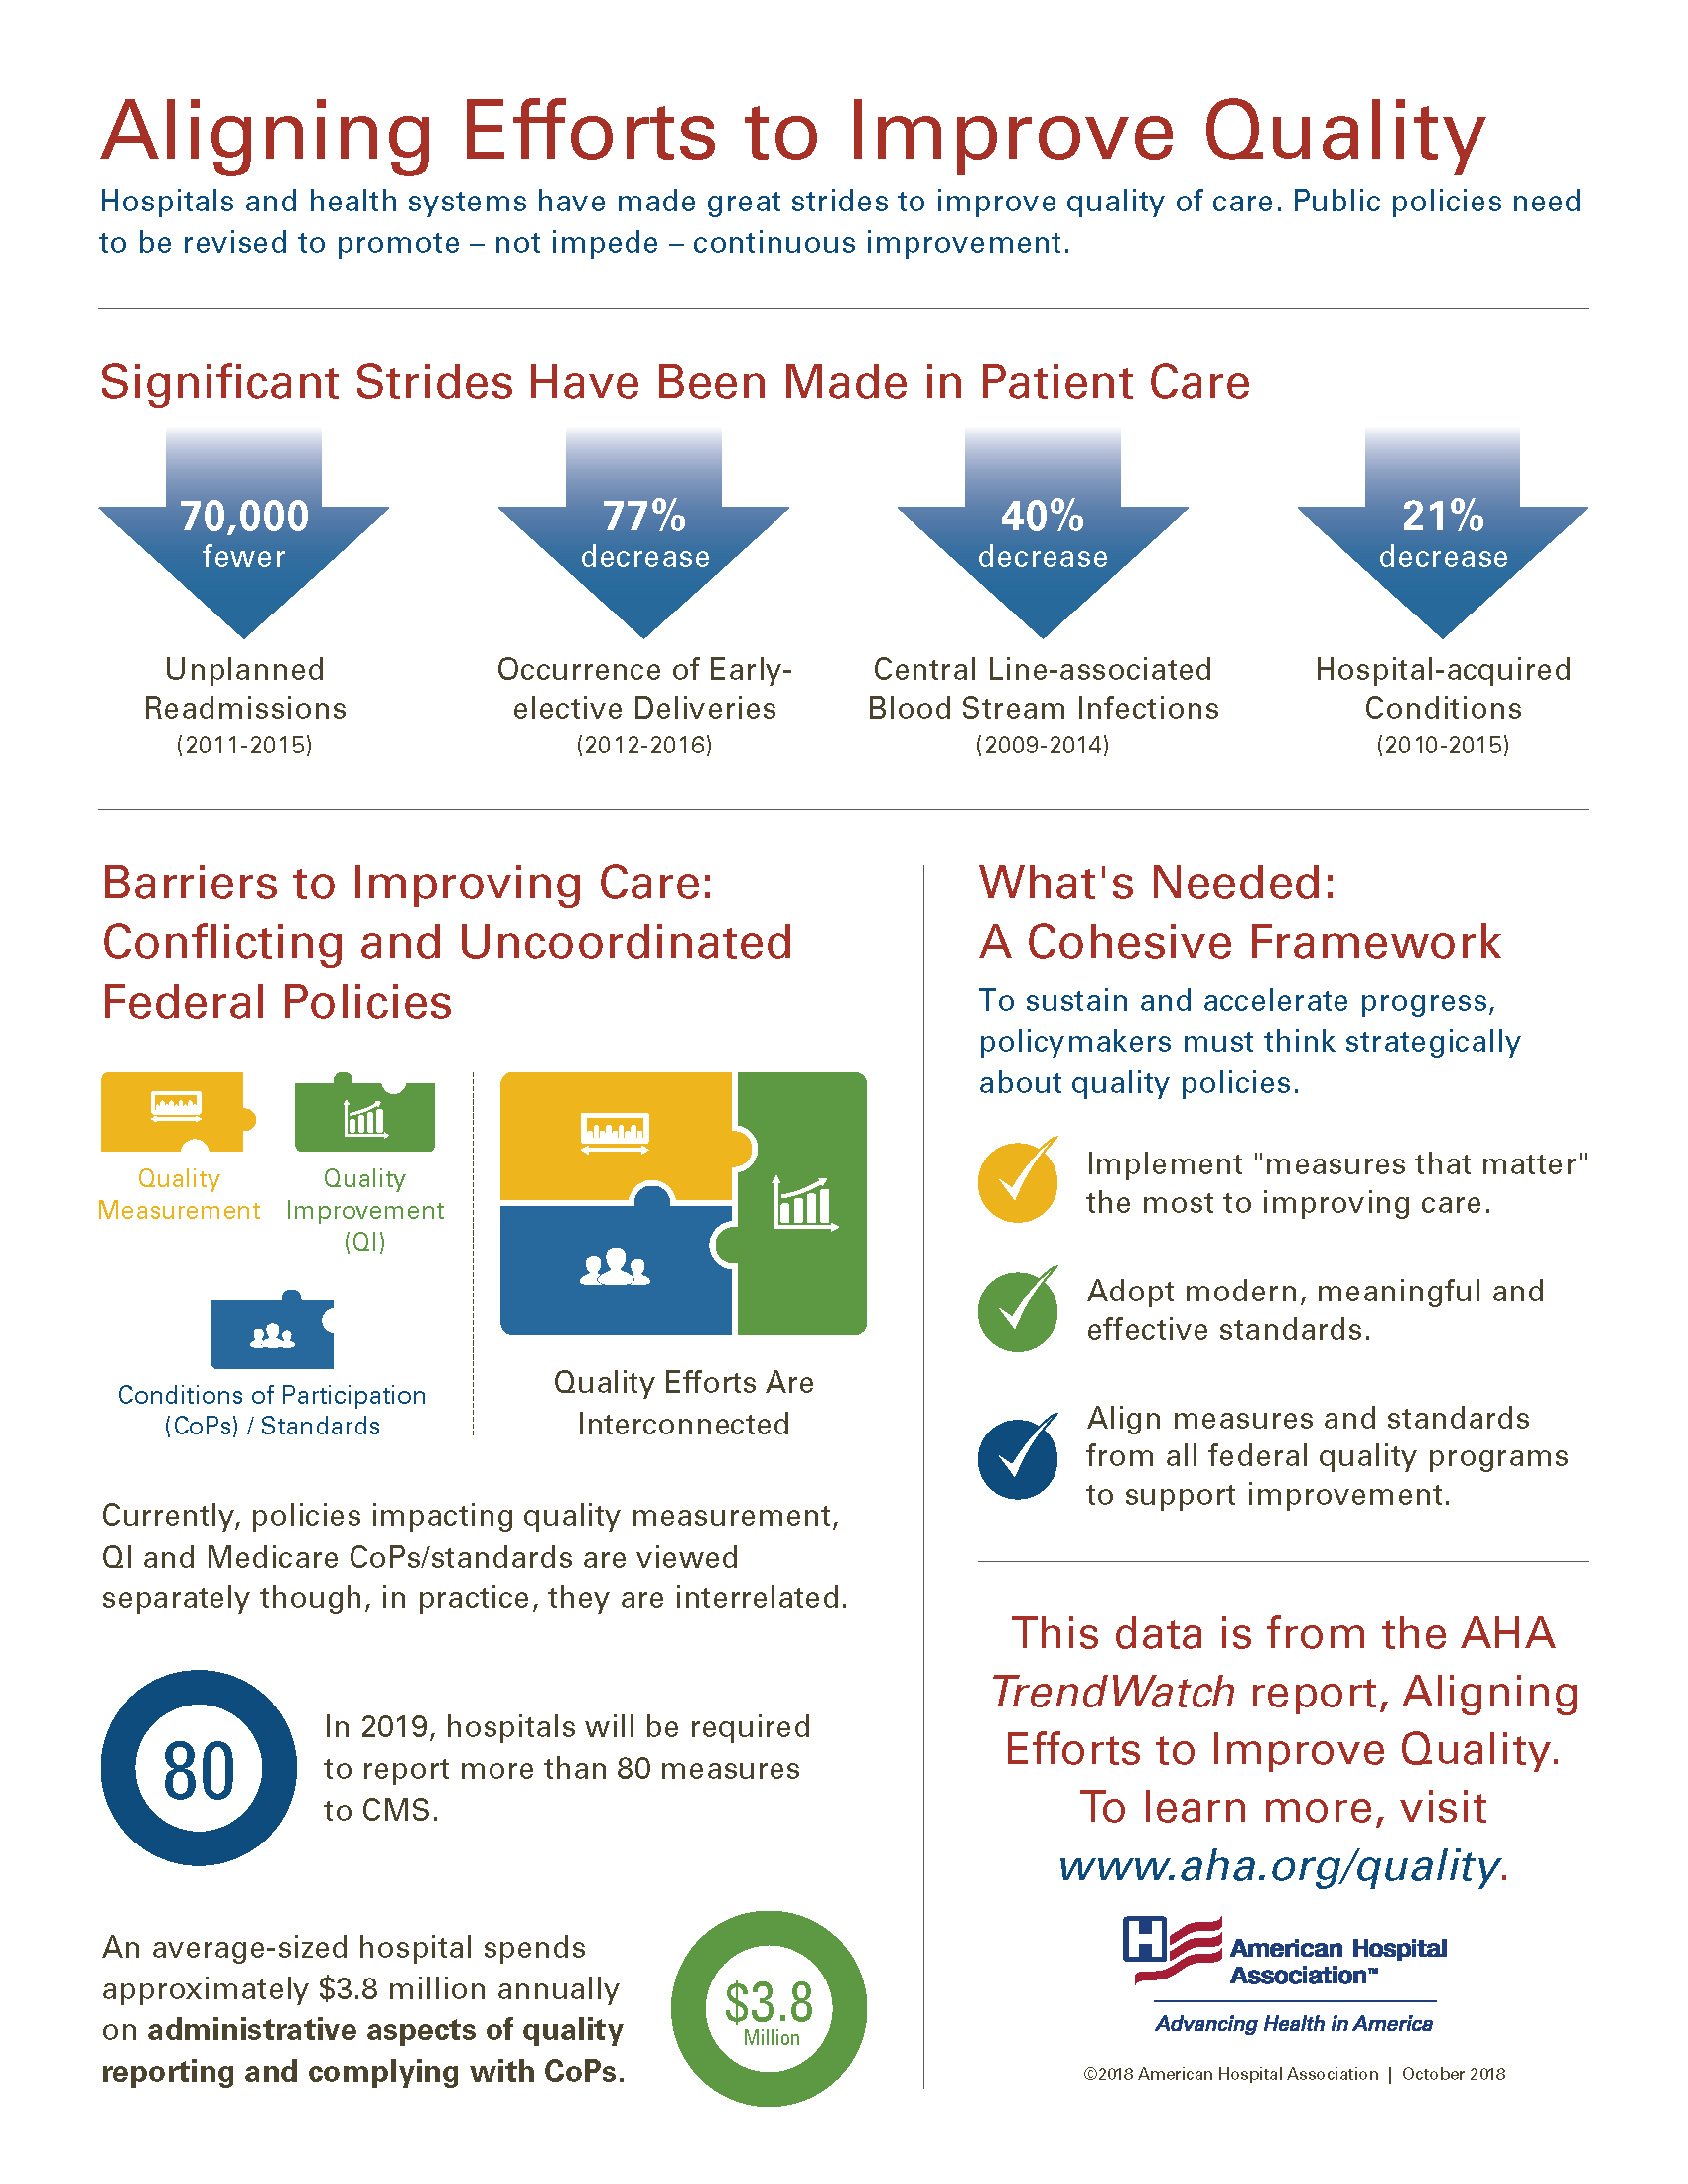 TrendWatch Infographic: Aligning Efforts to Improve Quality